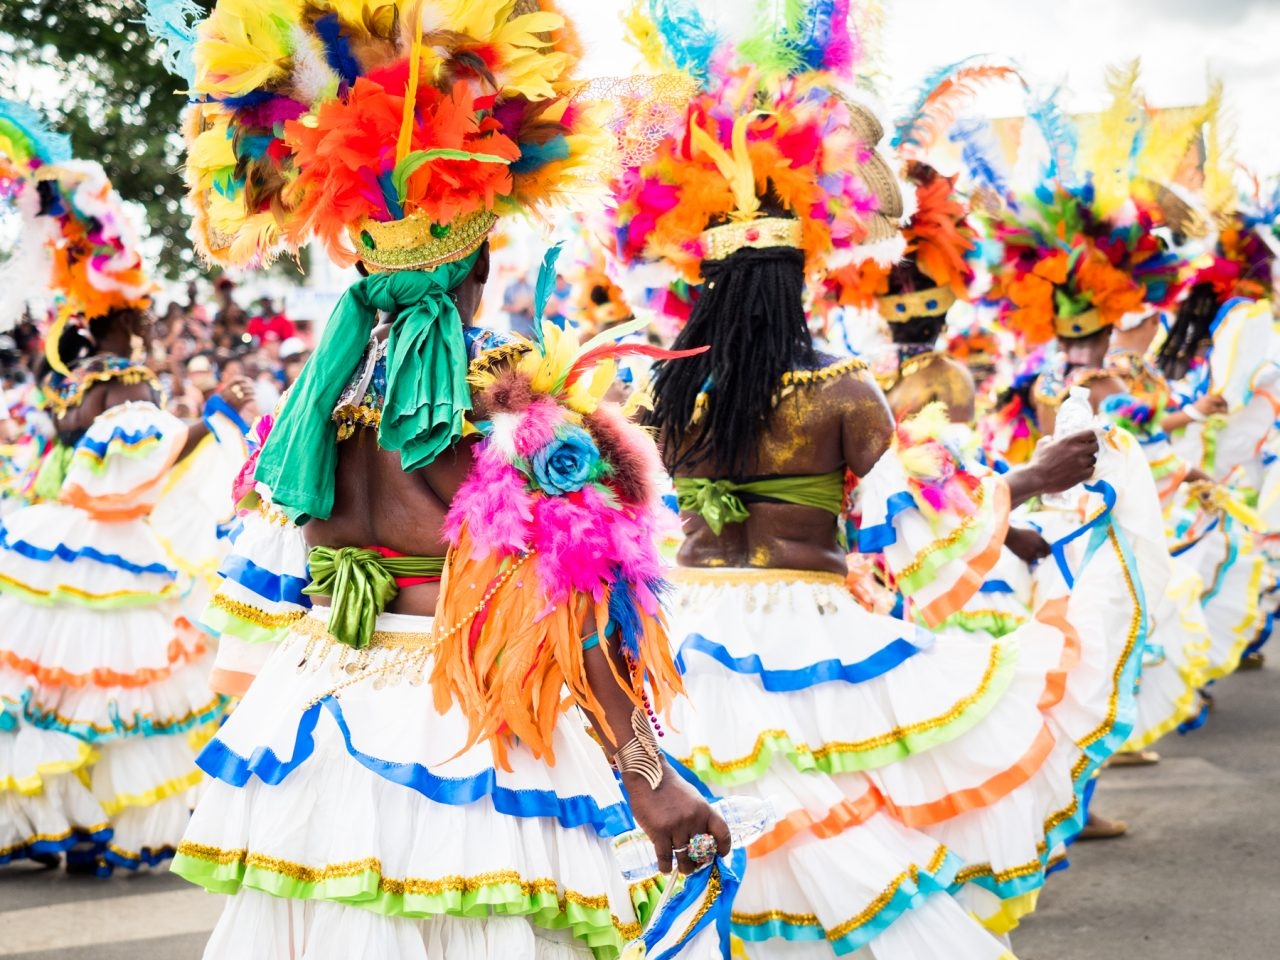 carnaval guadeloupe-musique carnaval guadeloupe-déguisement carnaval guadeloupe-groupe de carnaval guadeloupe